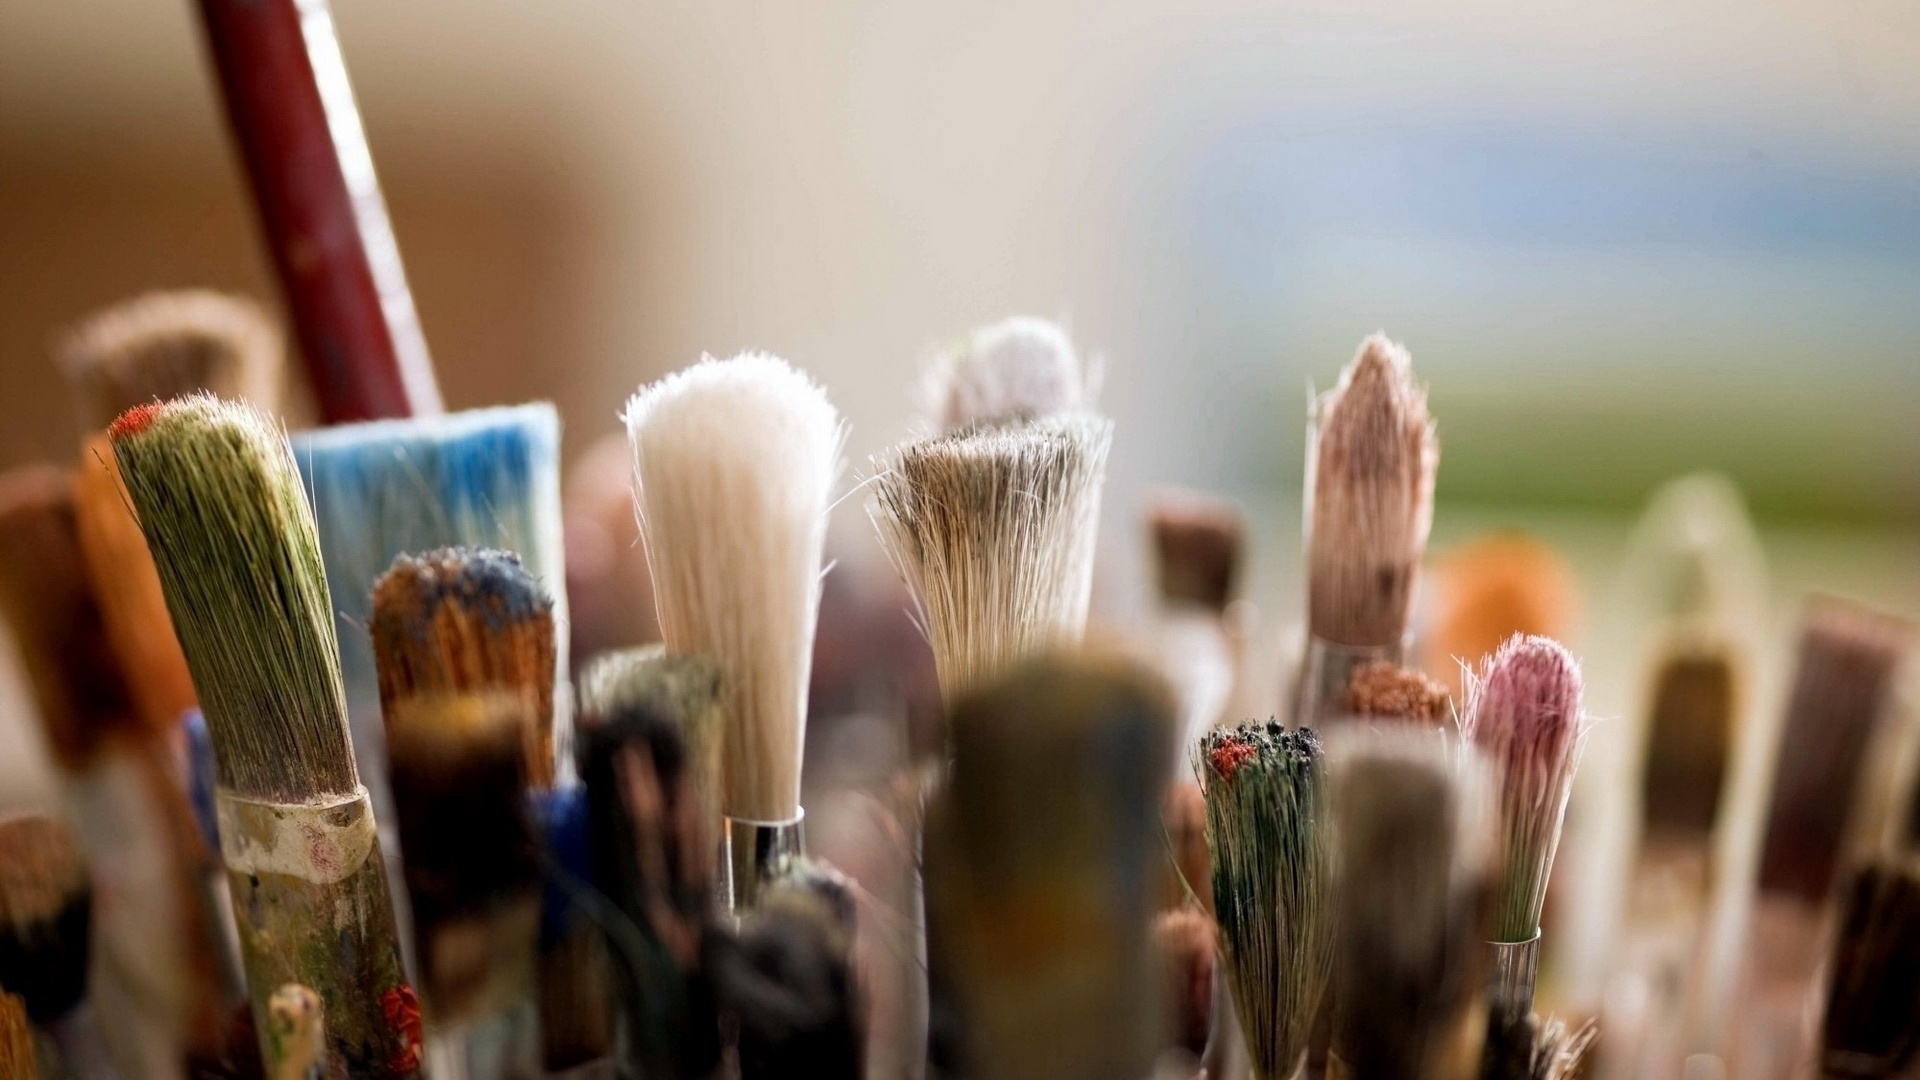 Brushes And Paint wallpaper for computer